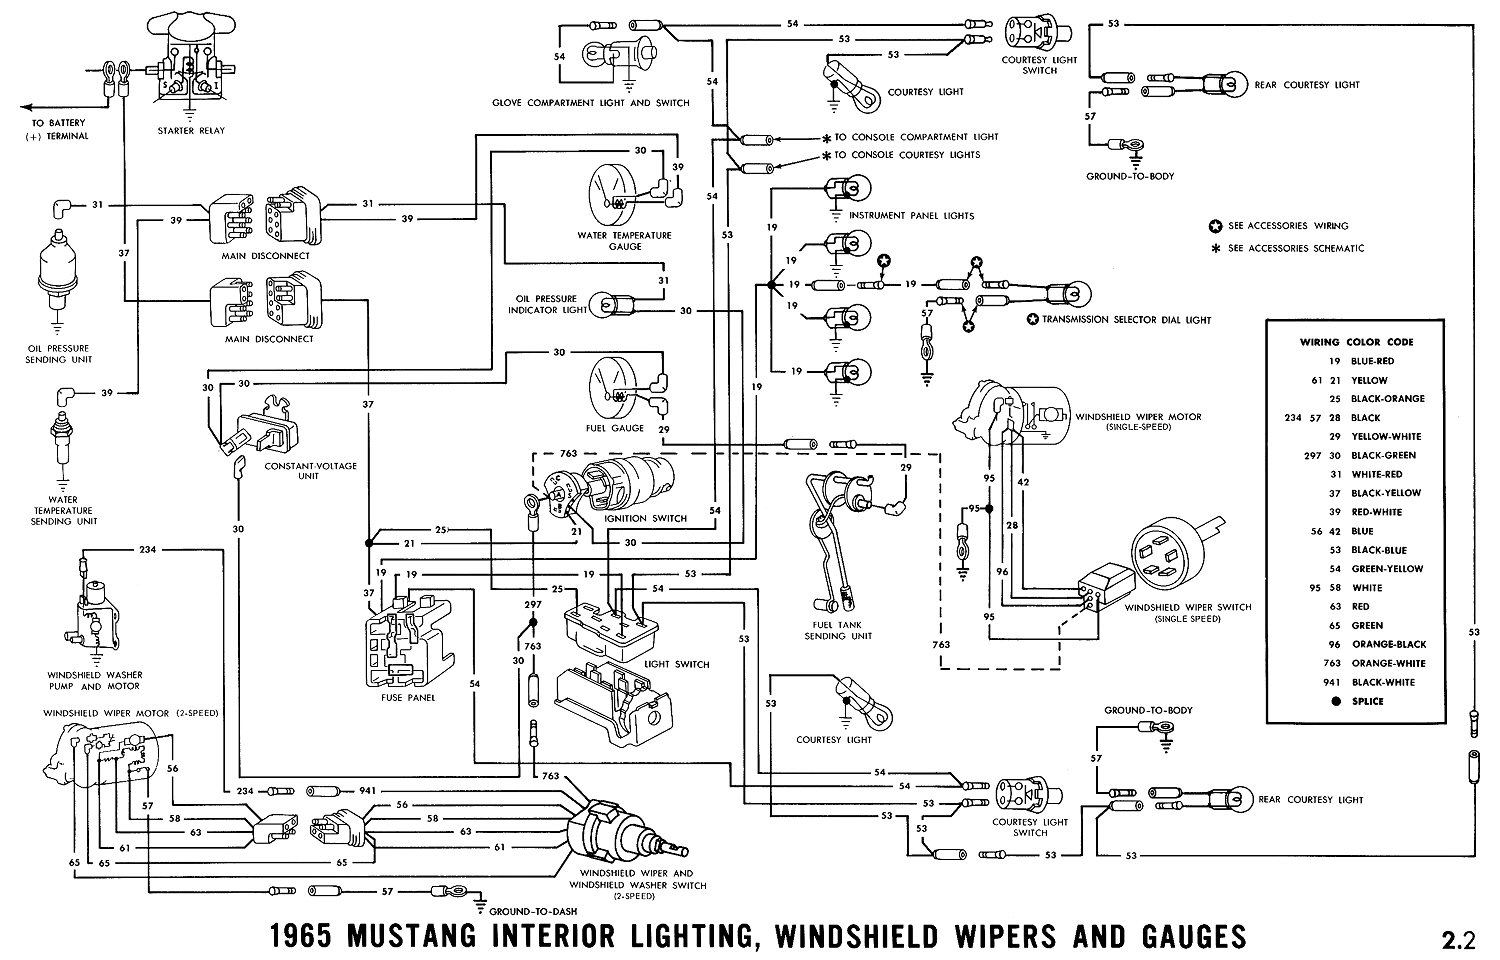 ba xr6 icc wiring diagram nervous system fill in the blank 1965 ford falcon harness all data for block f 150